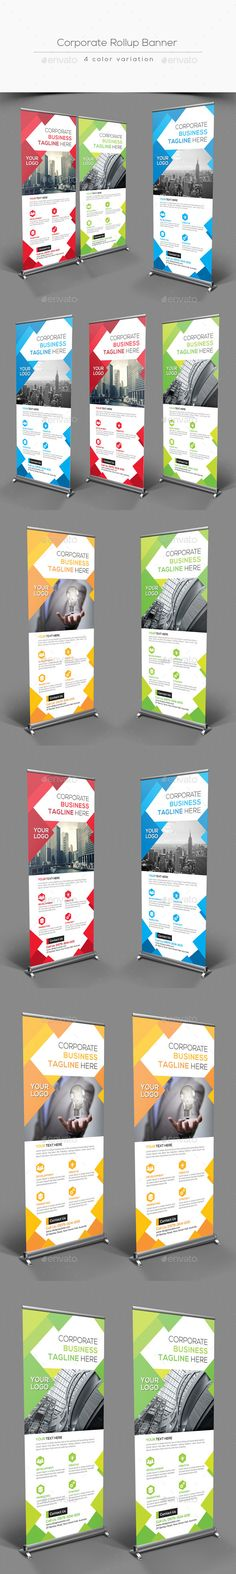 Corporate Rollup Banner by Fully layered Adobe Photoshop 4 color variation 4 Psd File CMYK Color Mode 300 DPI Resolution Size Signage Design, Banner Design, Flyer Design, Rollup Banner, Creative Banners, Creative Design, Banner Template, Digital Signage Displays, Roll Up Design